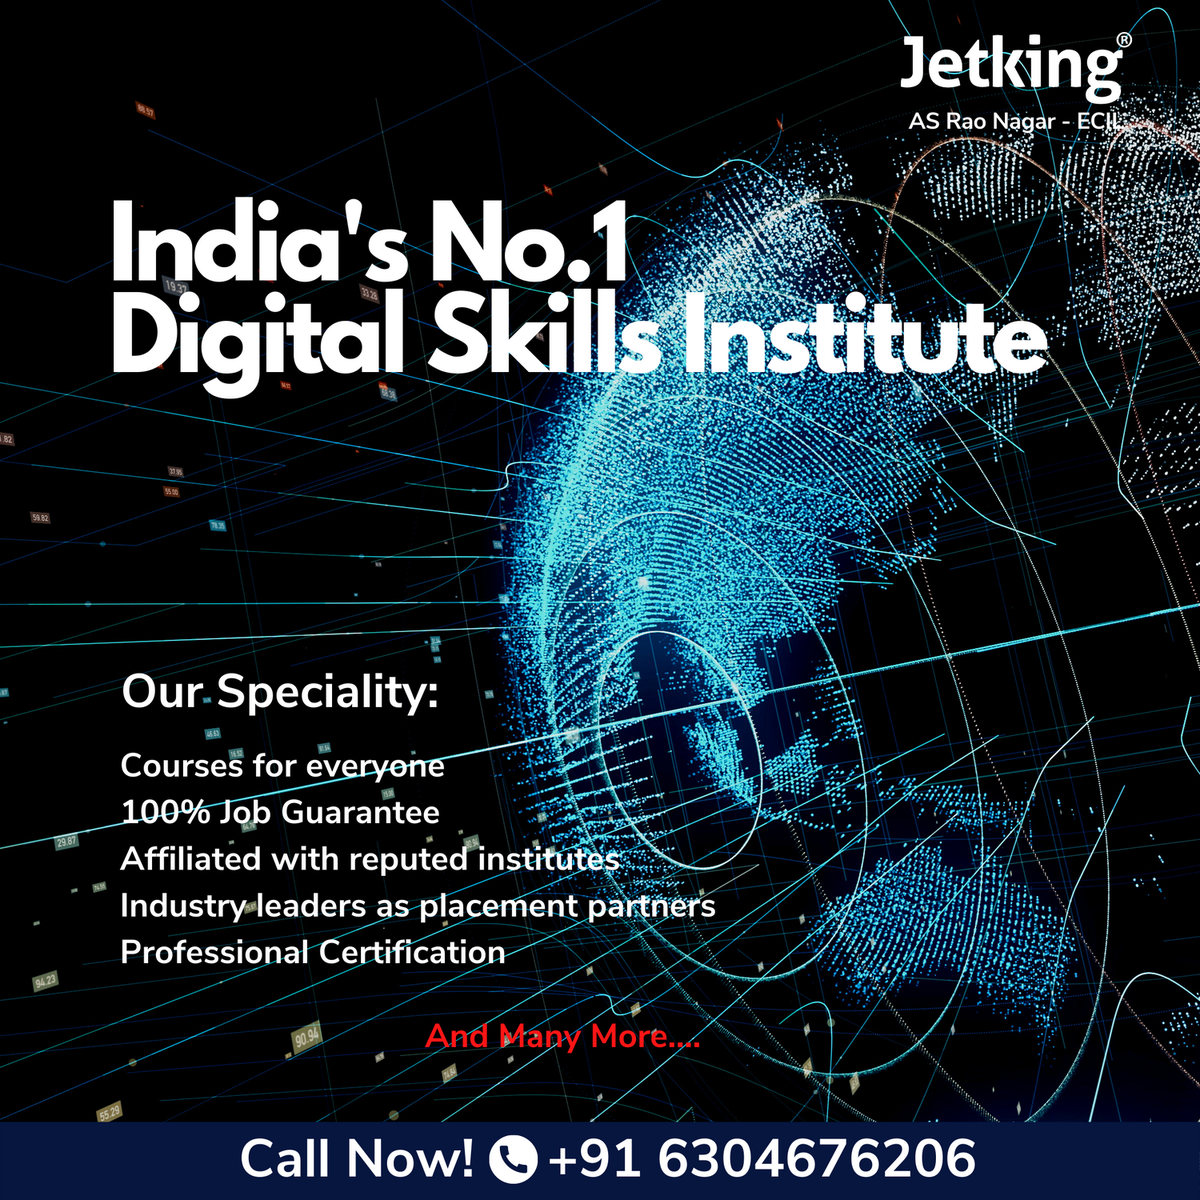 Digital Solutions where education and carrier are not to be worried off anymore. . . #computer #technology #computerscience #computerengineering #AWS #Ethicalhacking #coding #webdeveloper #software #programmers #Jetking #instatech #technologyrocks #cloudcomputingpic.twitter.com/lbaSq4wupl